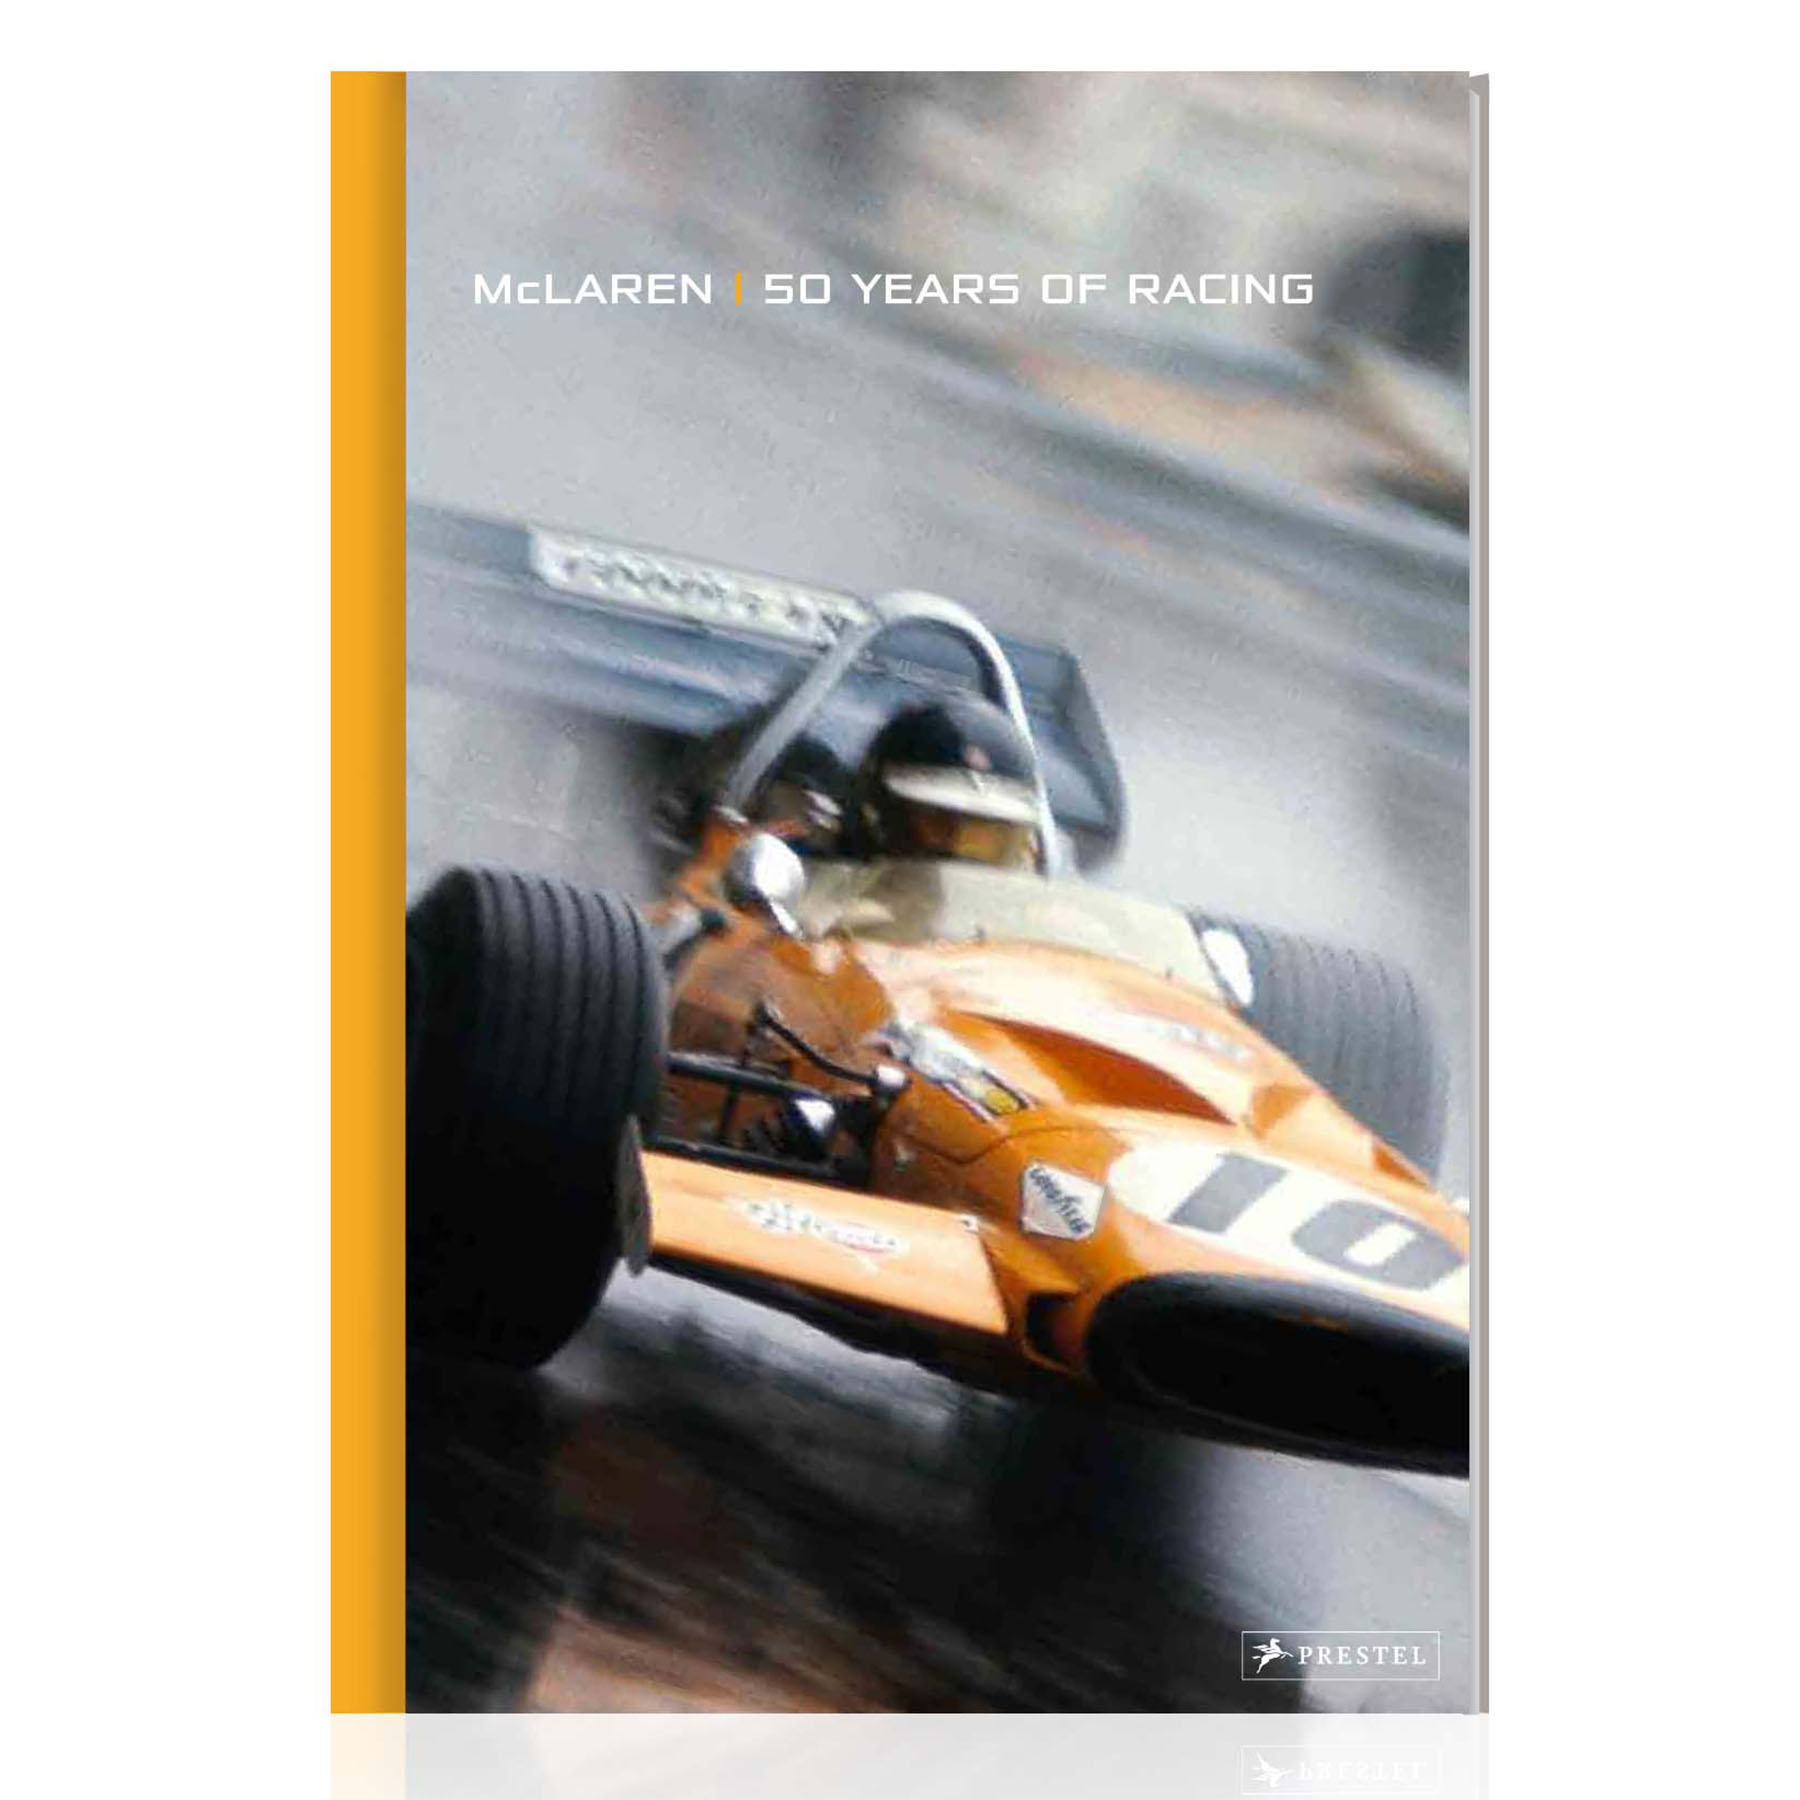 McLaren 50 Years of Racing